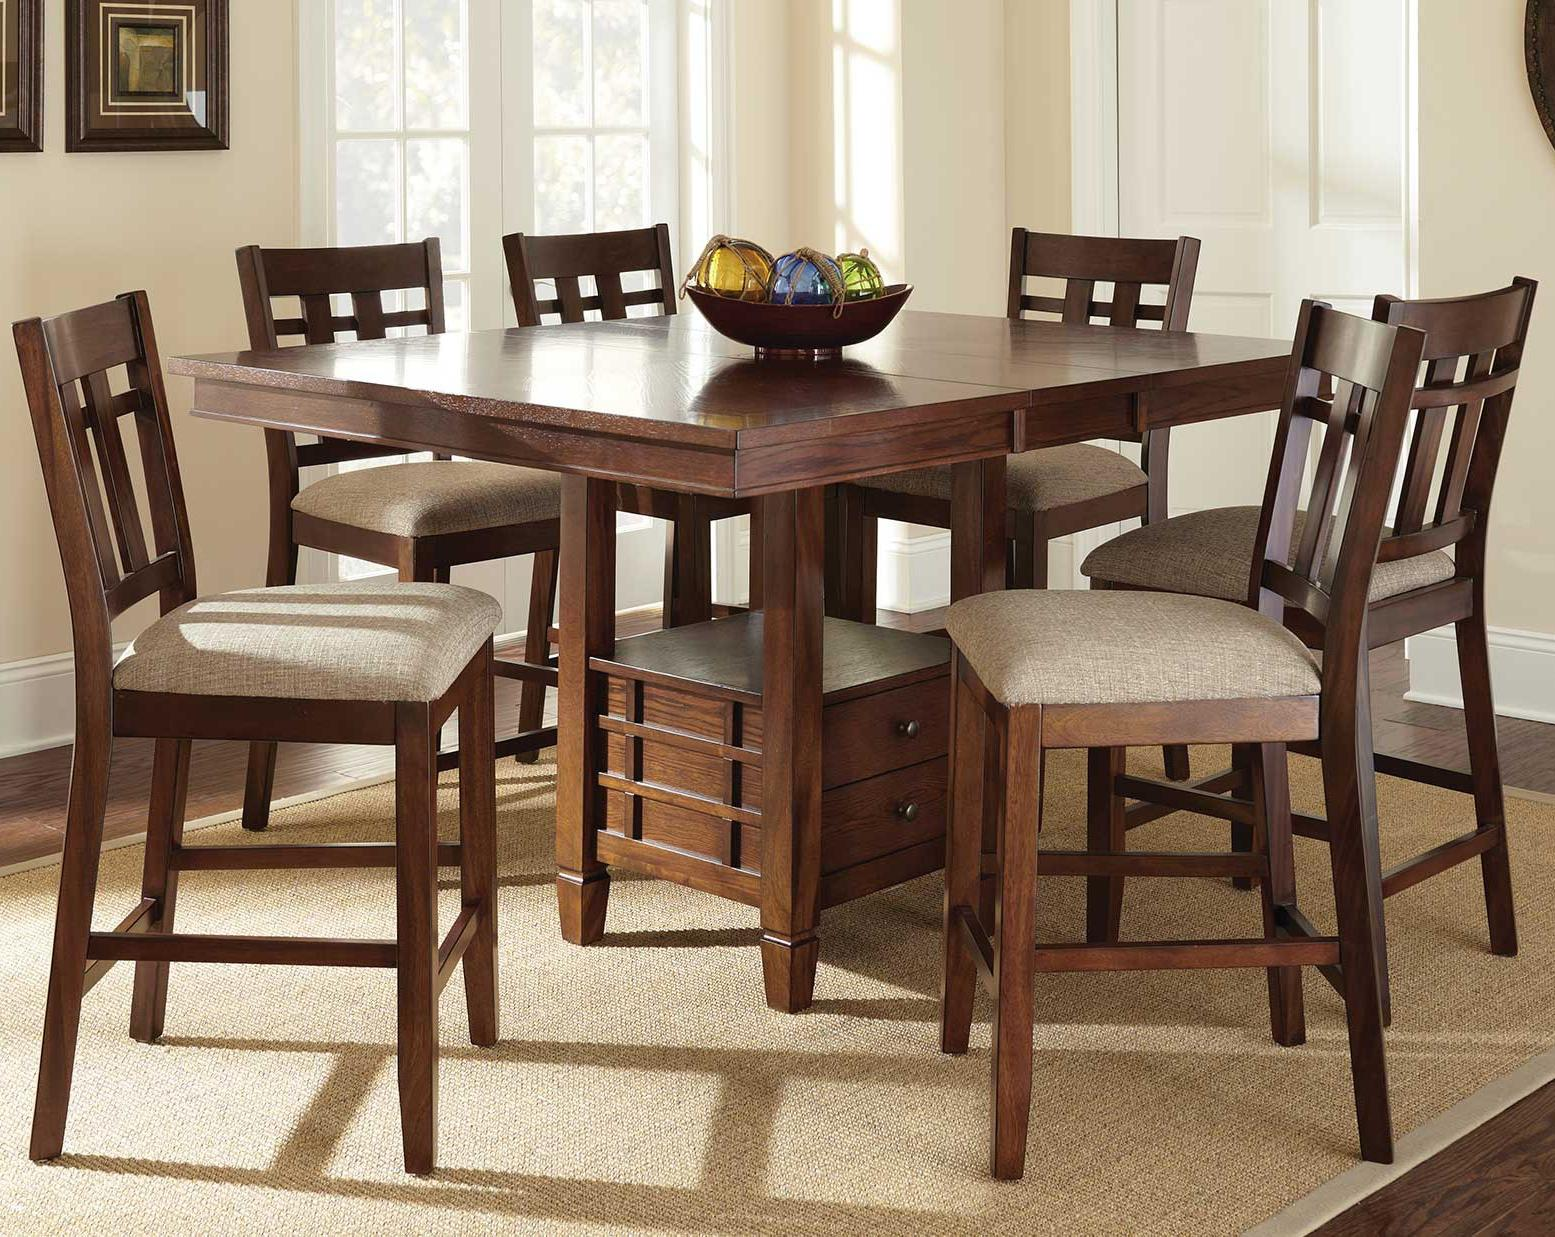 Steve silver bolton 7 piece counter height dining set with for Counter height dining table set